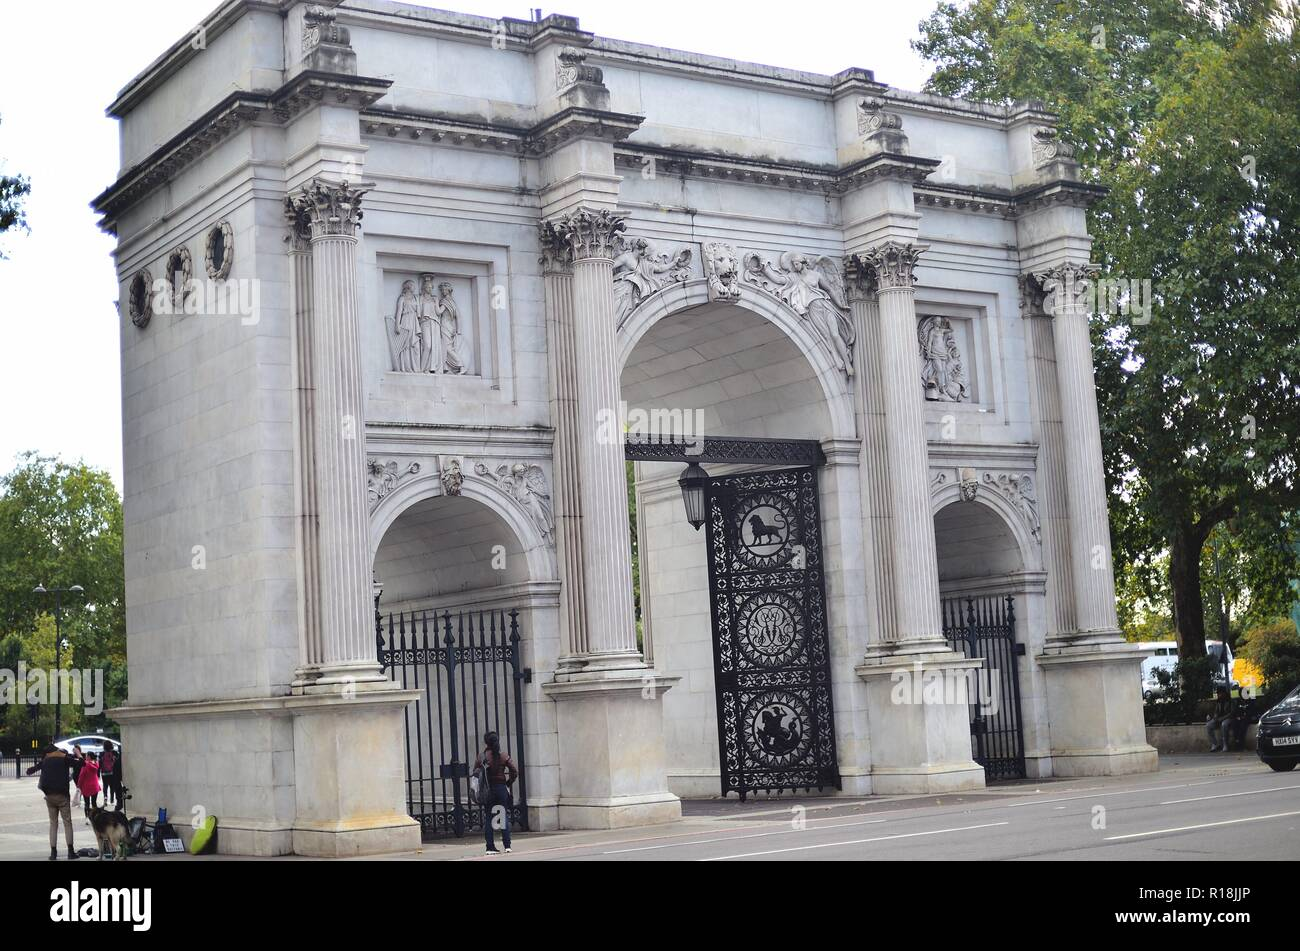 London, England, United Kingdom. Marble Arch, built in 1827, is a white marble triumphal arch at the northeast corner of Hyde Park. - Stock Image